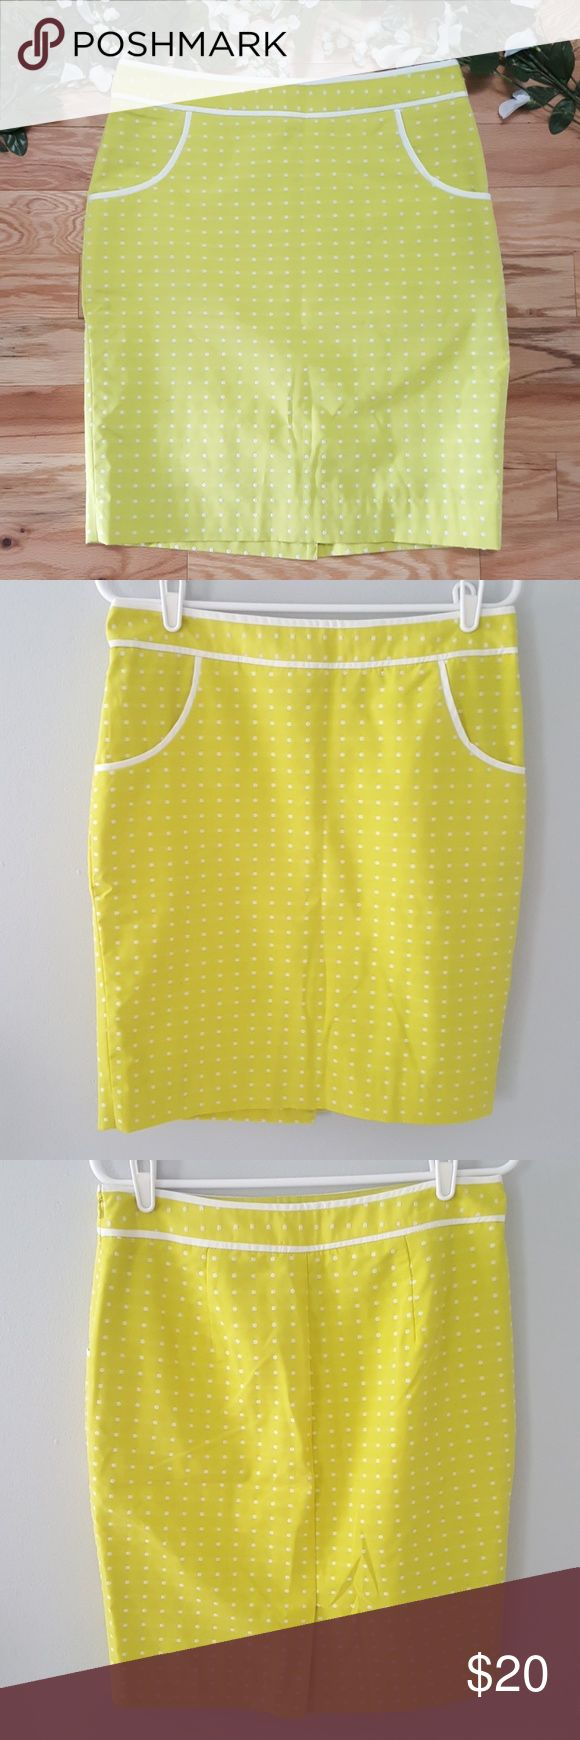 Limited Yellow and White Polka Dot Pencil Skirt This is a pre-owned The Limited …